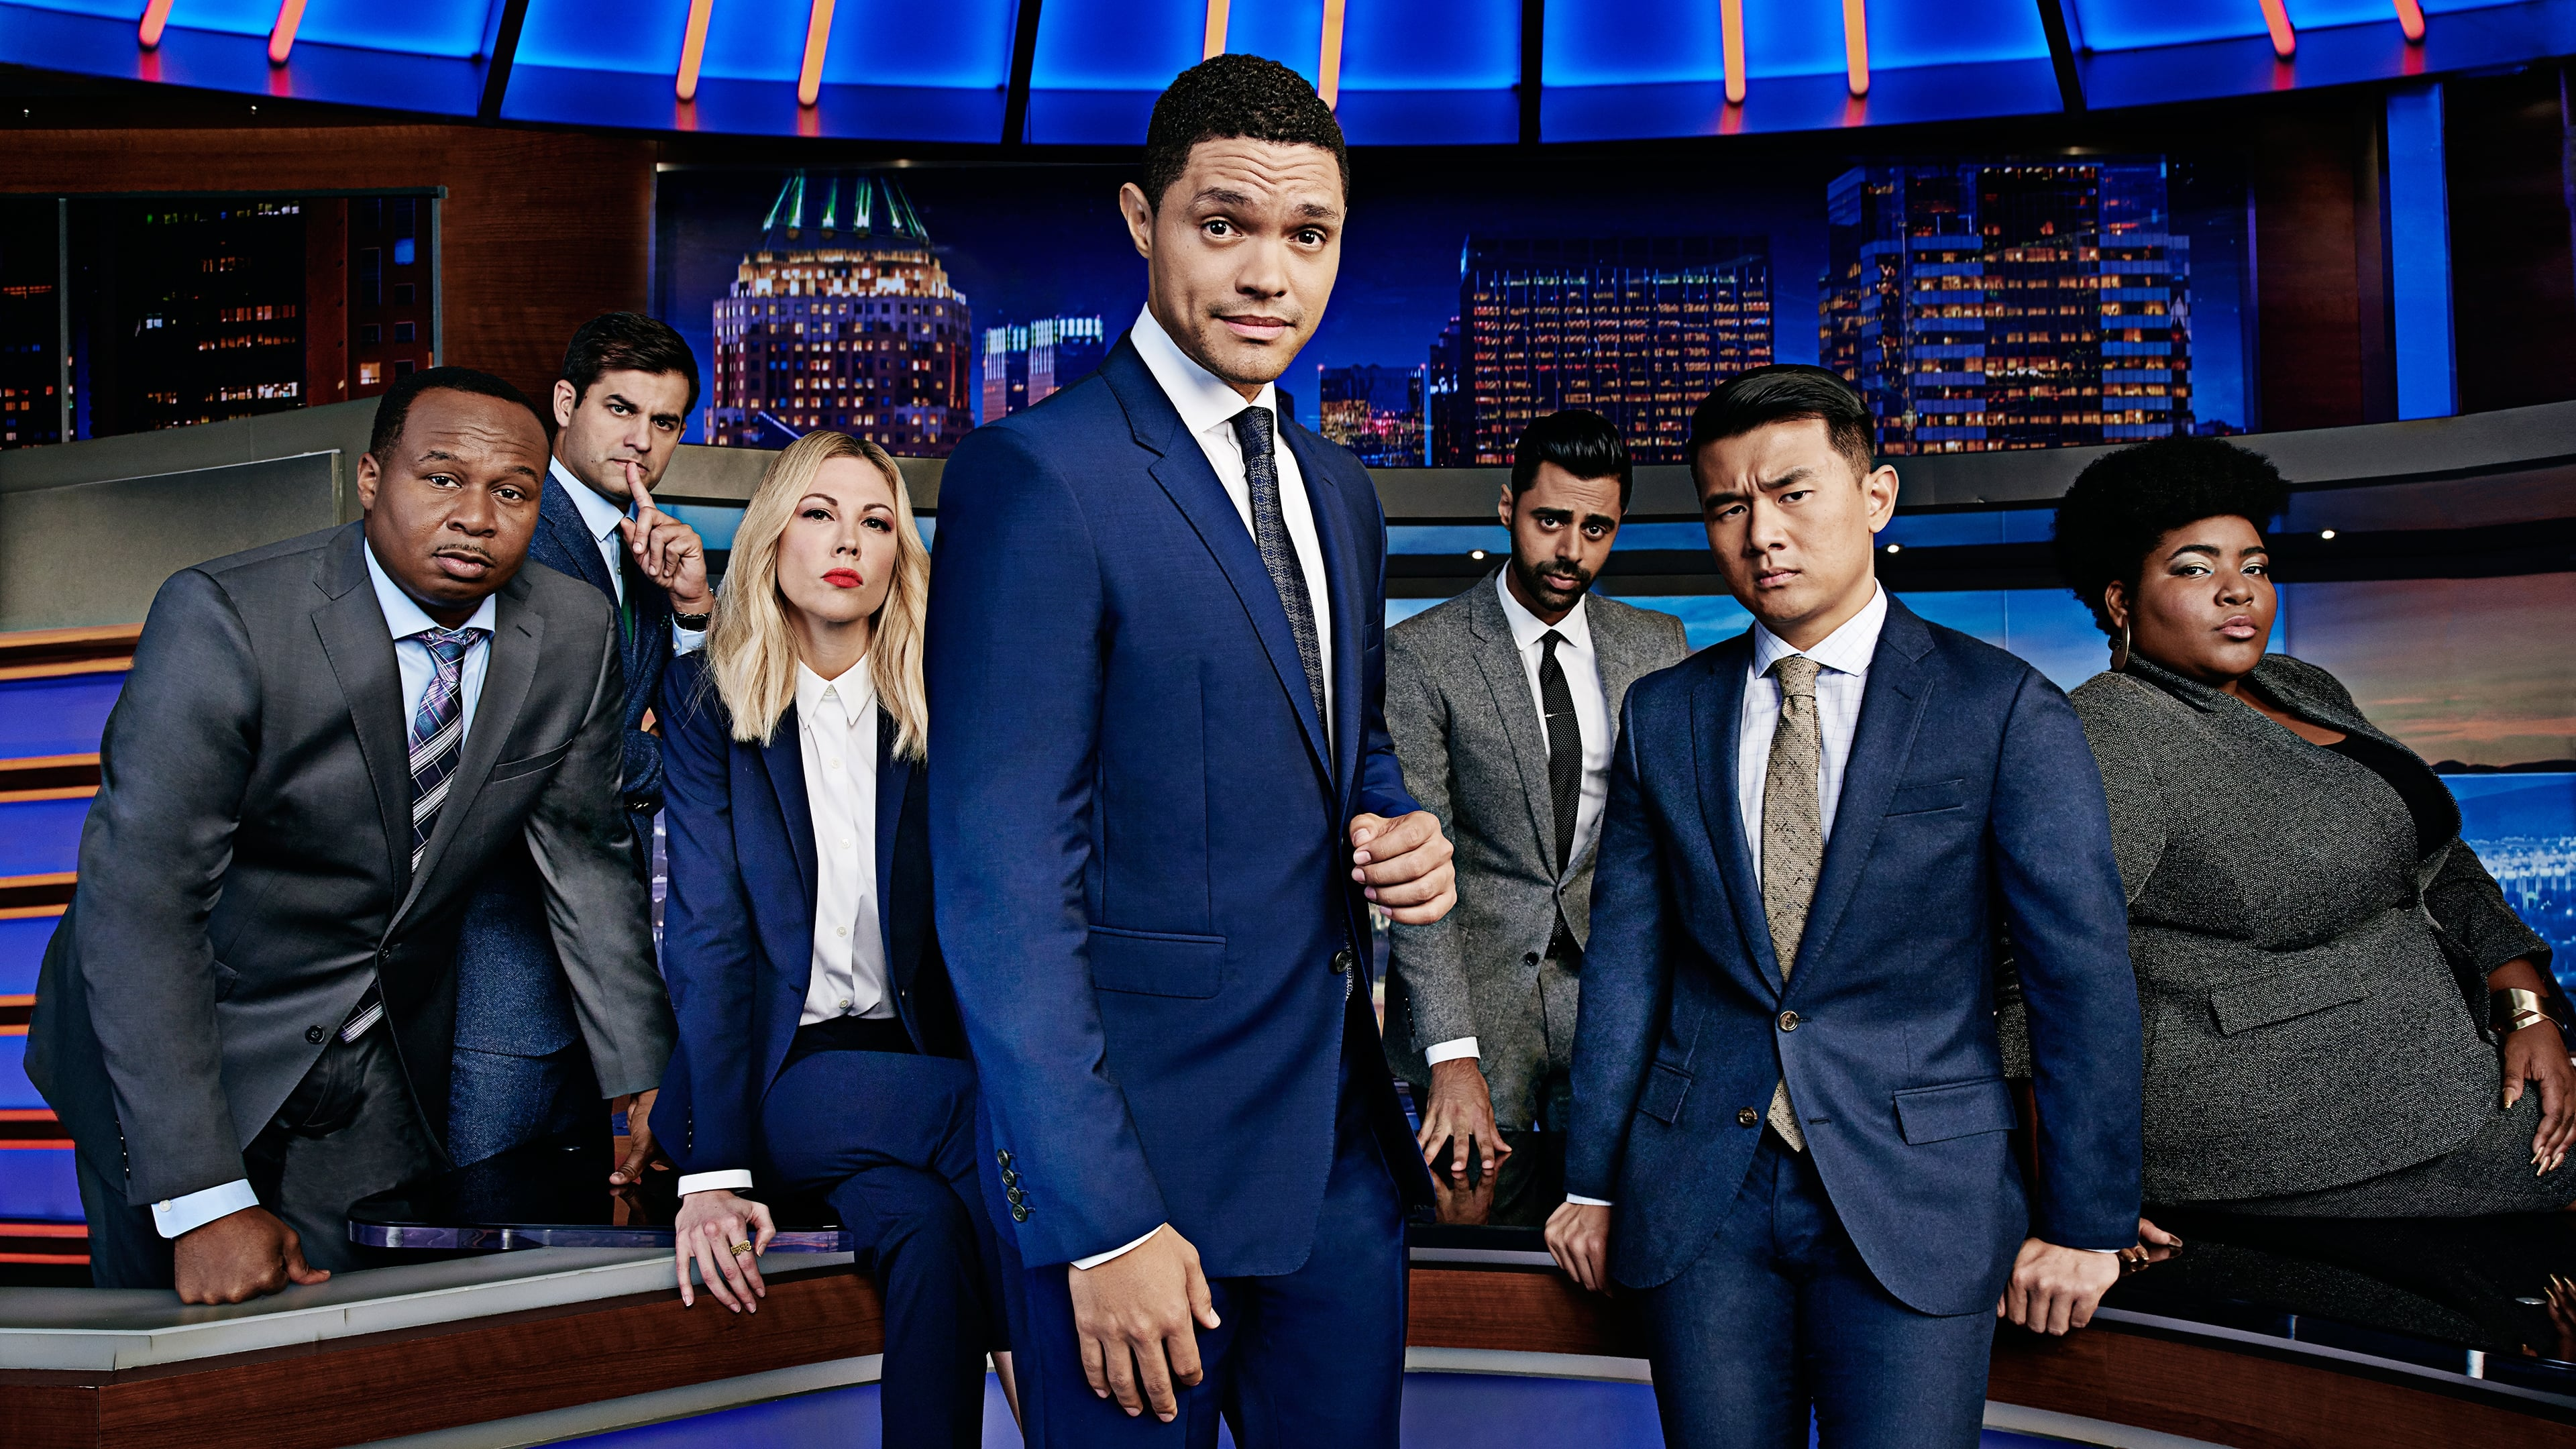 The Daily Show with Trevor Noah - Season 5